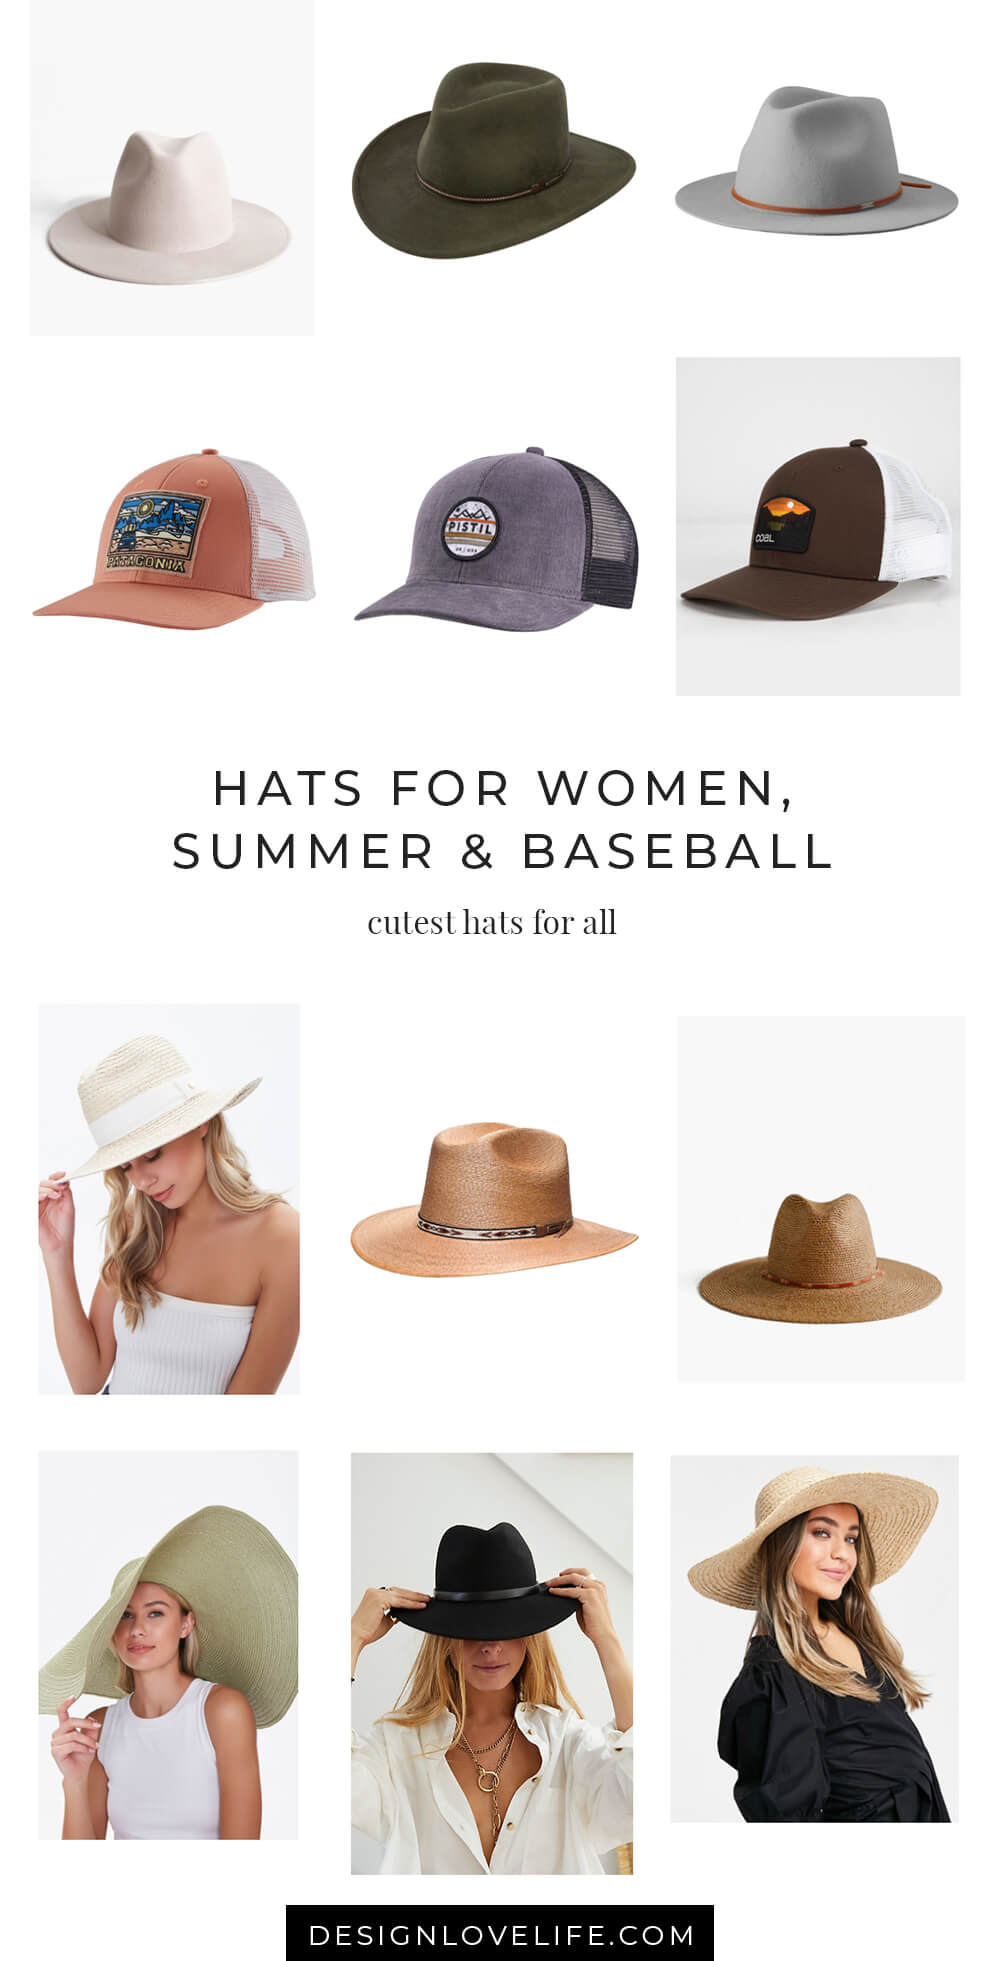 Hats for women, sunshine and baseball. Put away those stocking hats, the sun is out and it's new hat weather season! Annie Johnson | Design Love Life